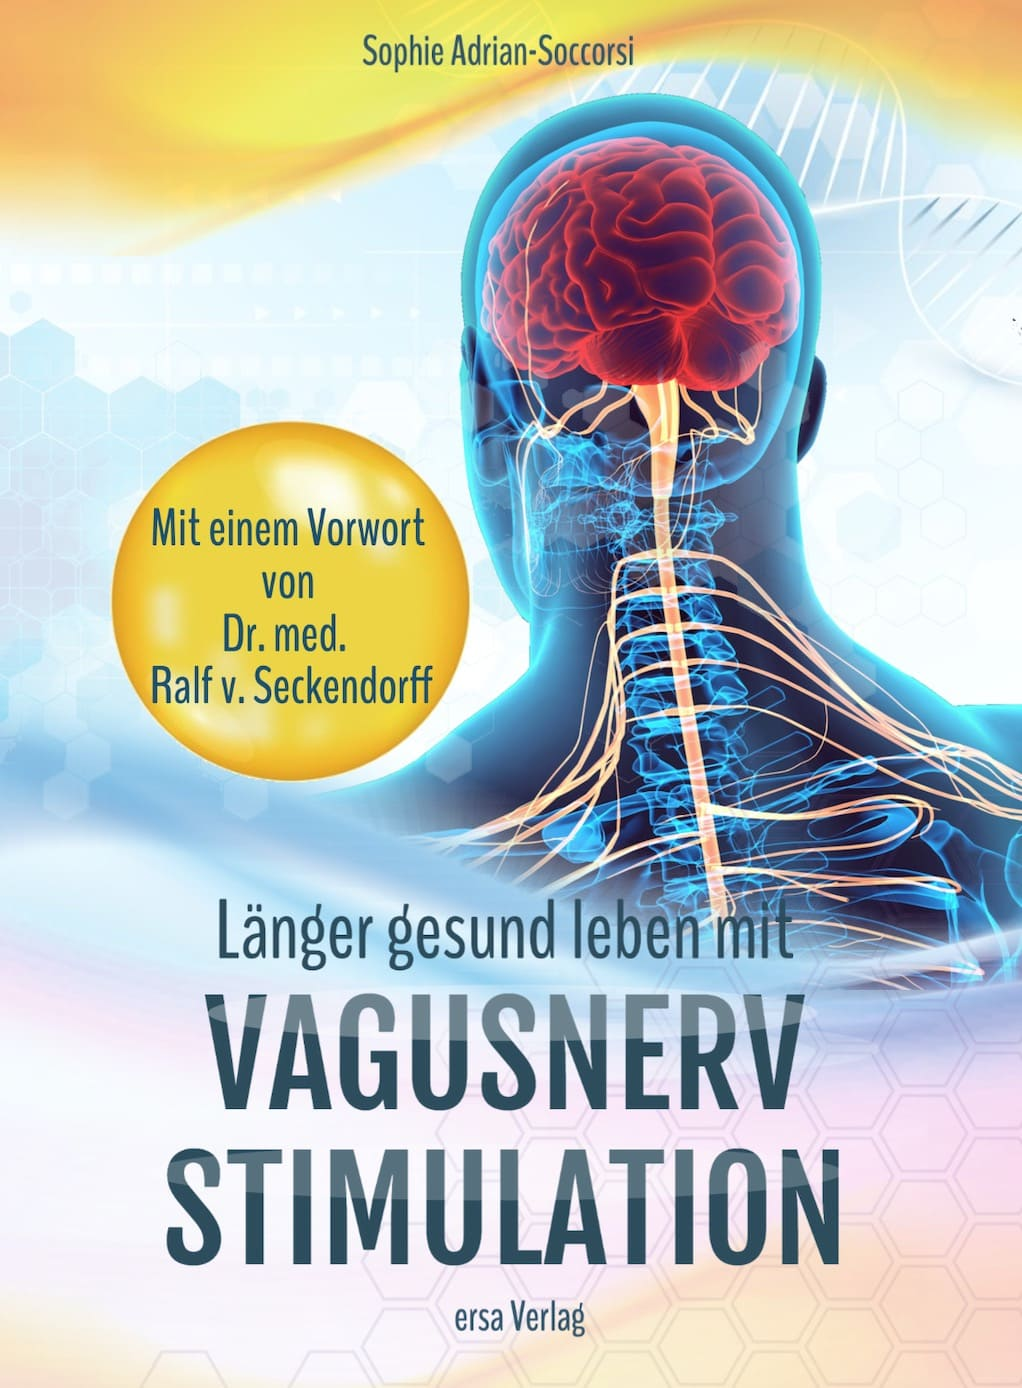 Vagusnerv Stimulation